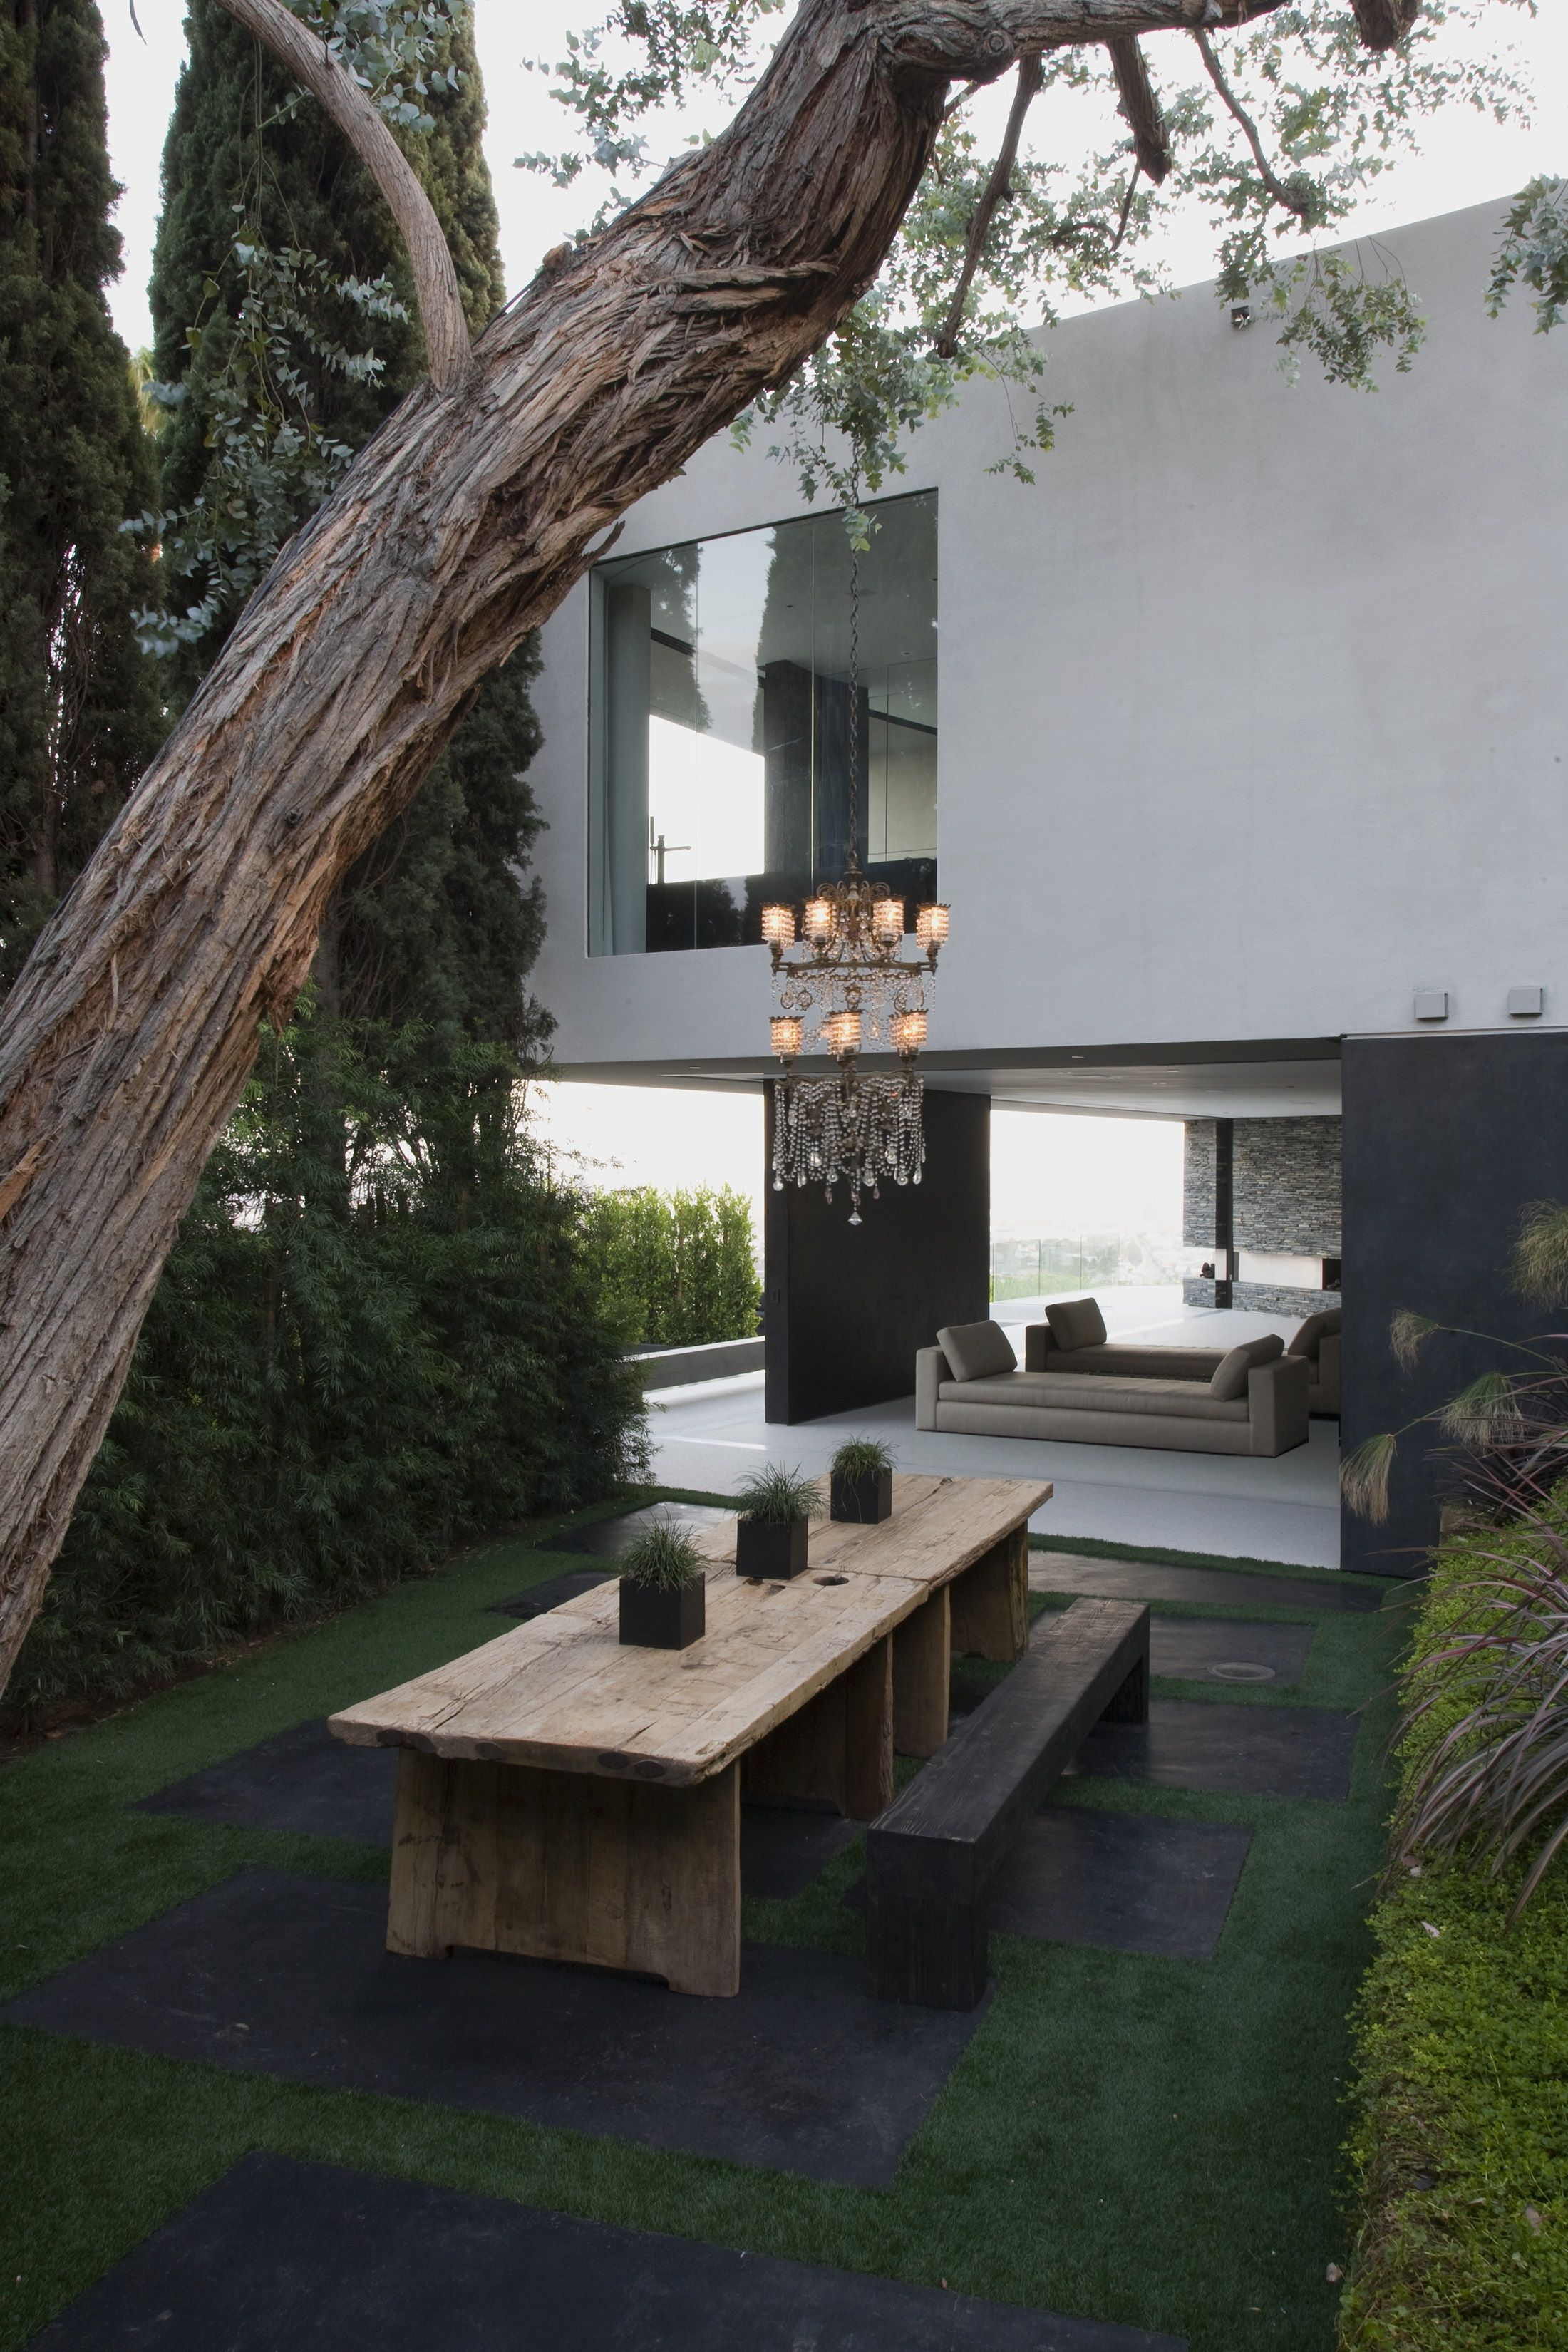 Home garden style  The Organic Modern garden style is characterized by unpretentious